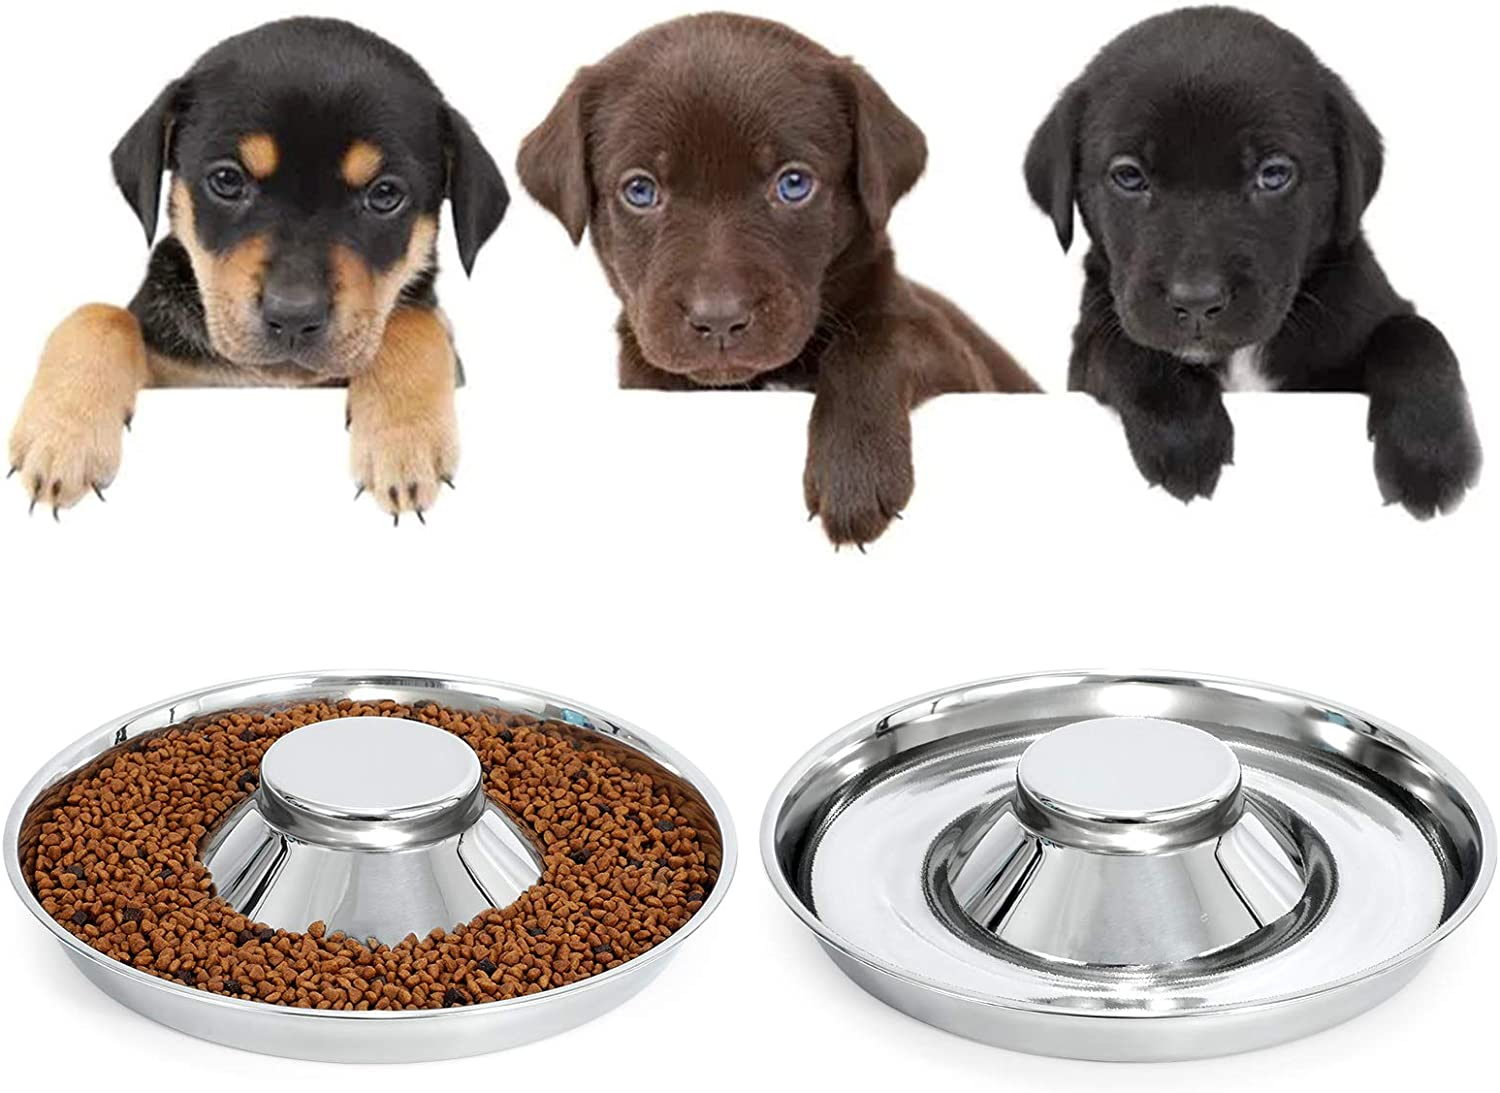 KASBAH Stainless Steel Dog Bowls for Puppy, 2 Pack Puppy Feeder Bowl for Feeding Food and Water Weaning Pet Feeder Bowl Water Bowl for Small Dogs/Cats/Pets